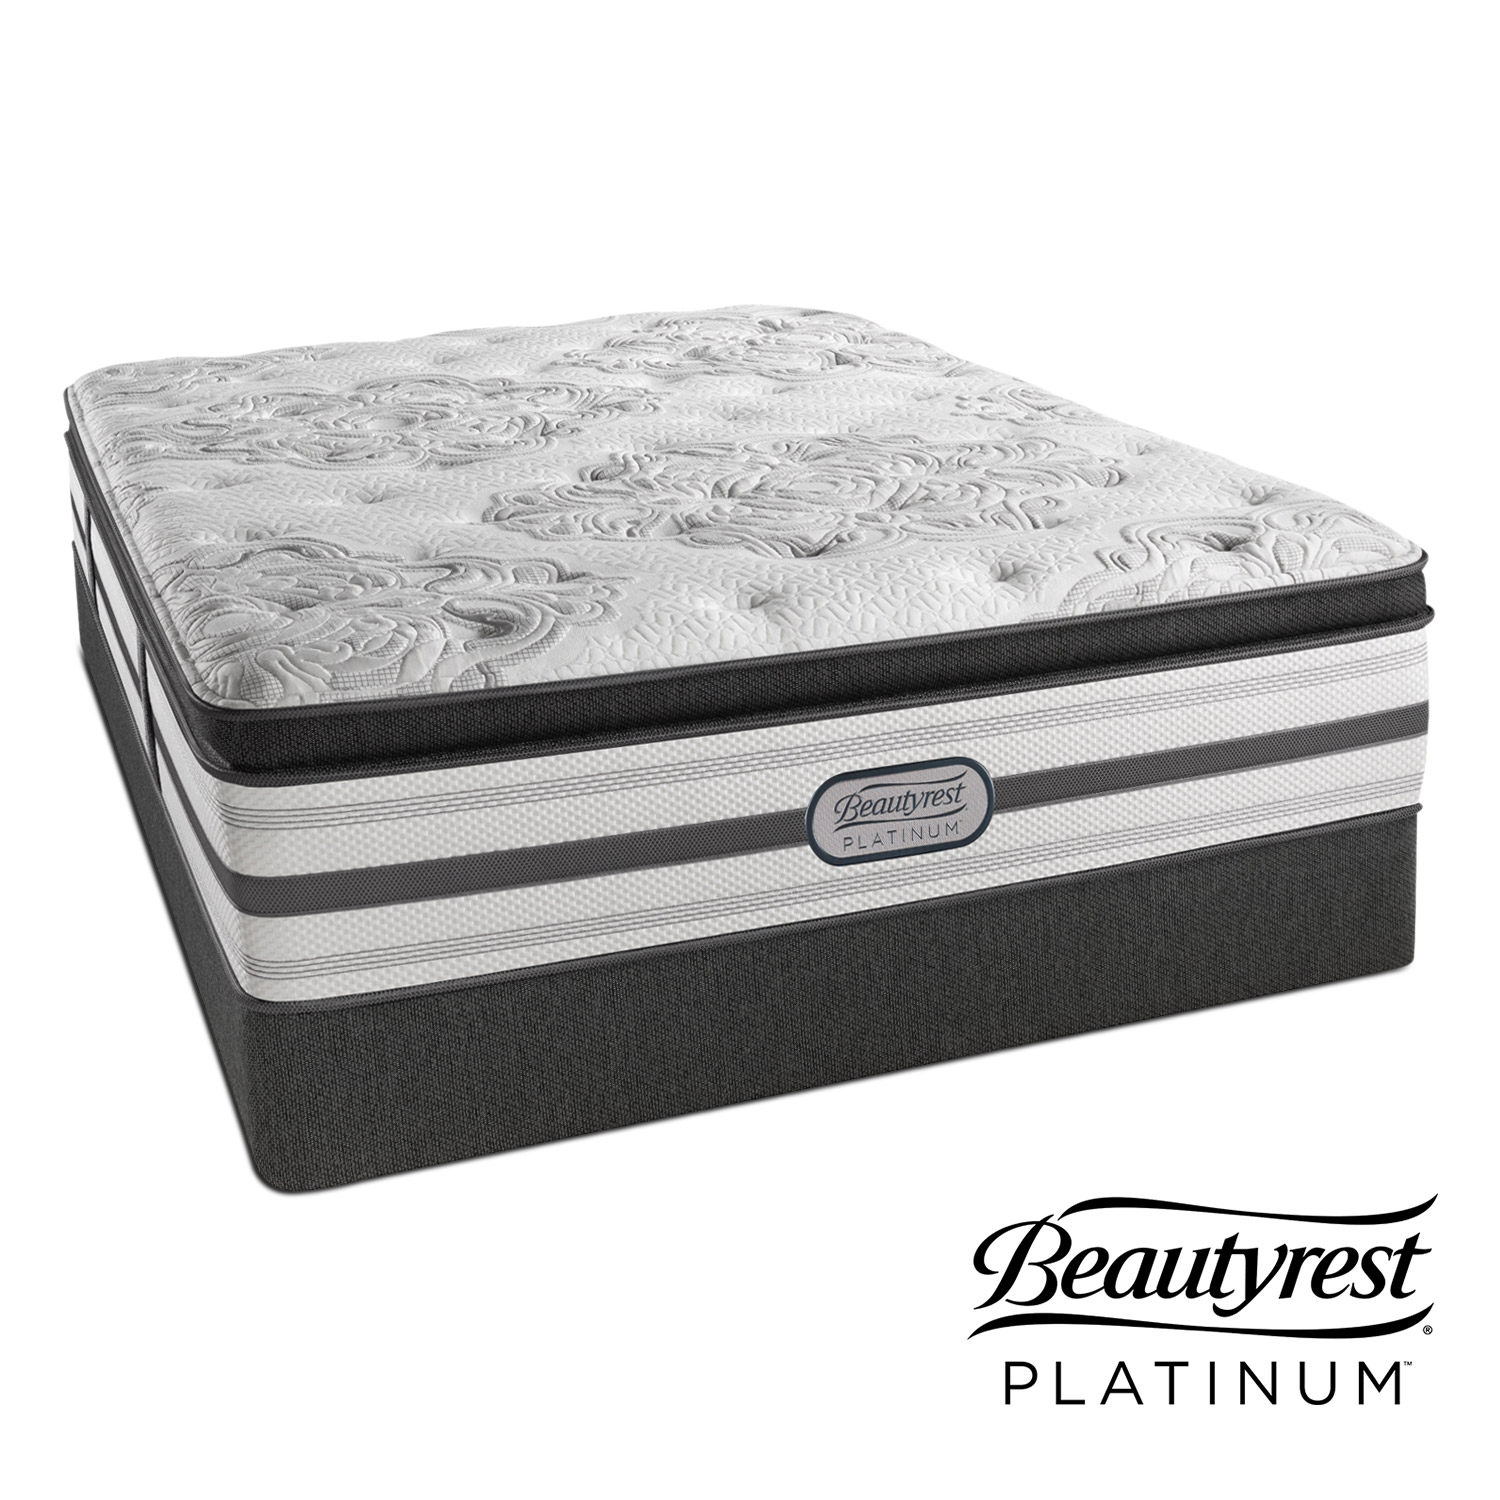 Mattresses and Bedding - Genevieve Plush King Mattress and Split Low-Profile Foundation Set